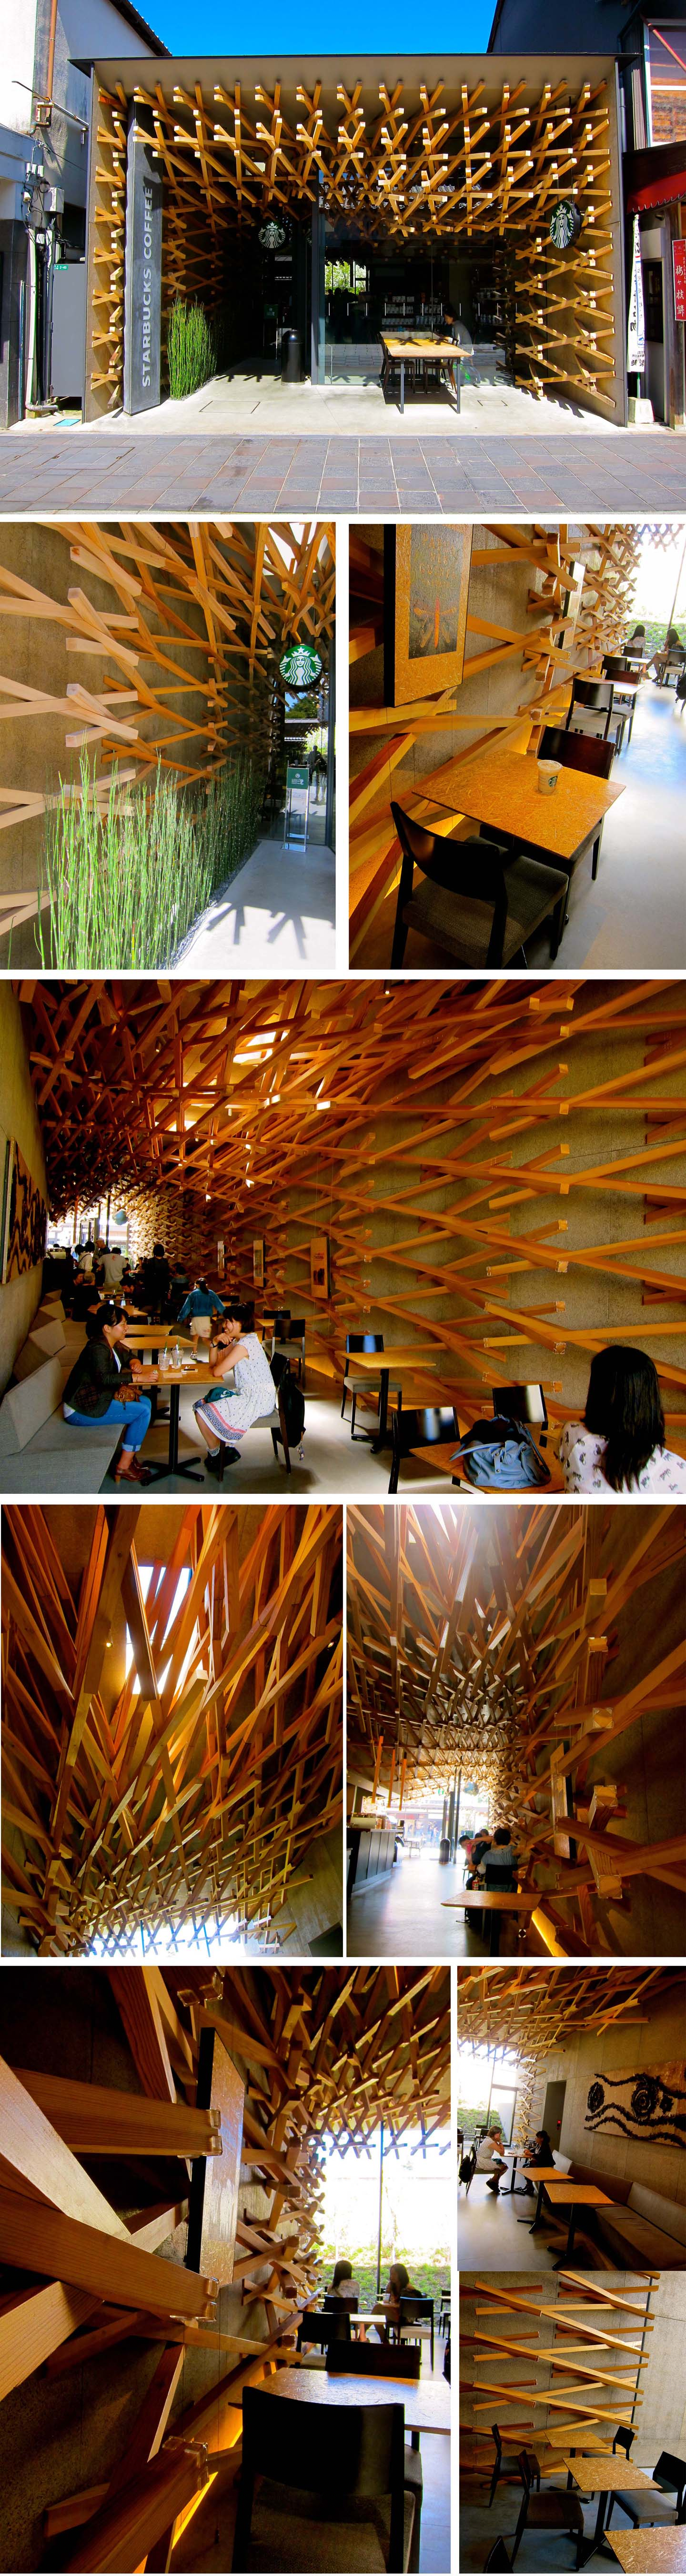 starbucks tenmangu collage small